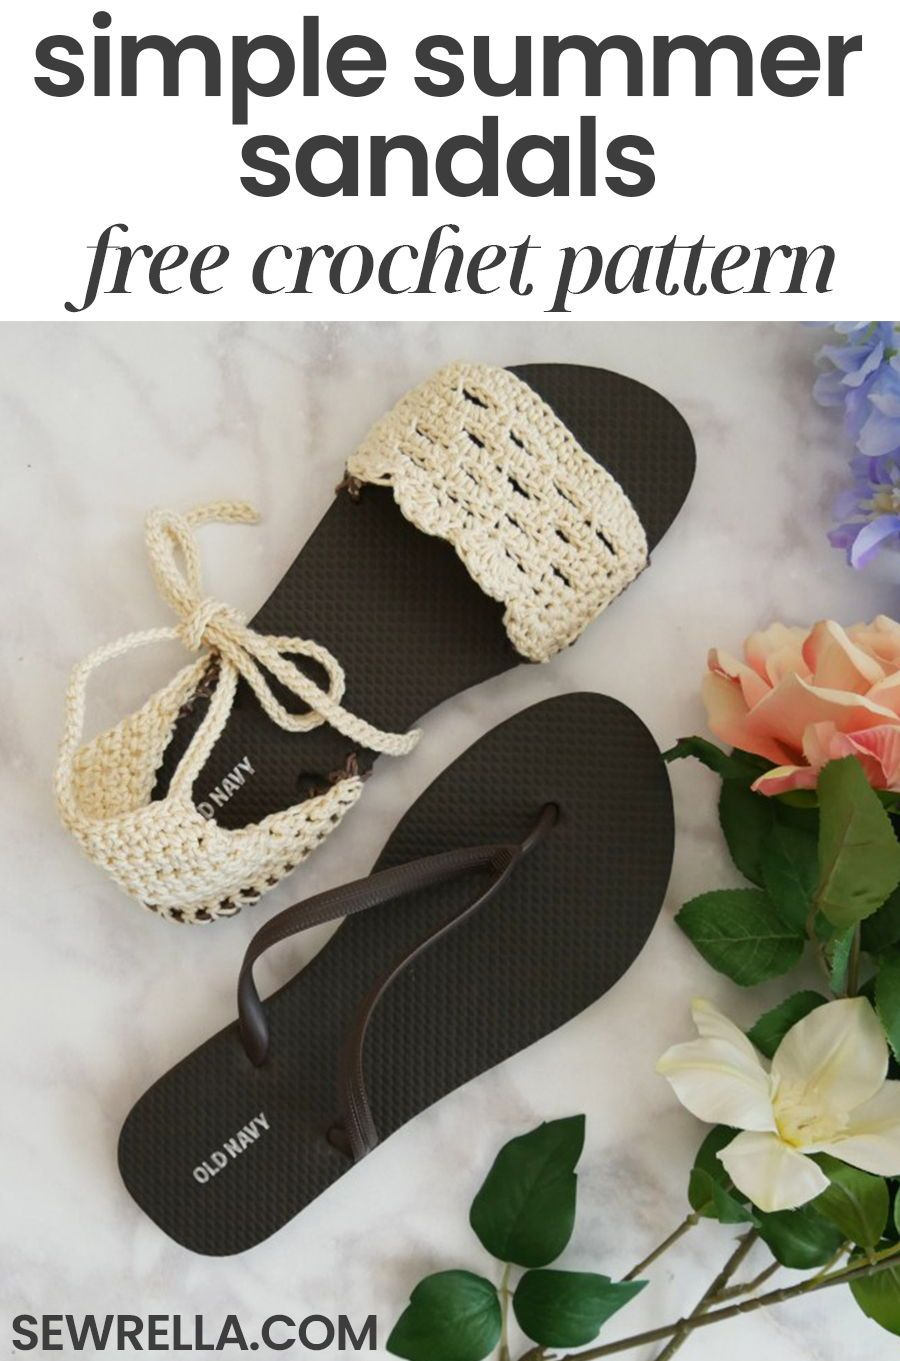 83c45c52a ... Flip Flop Soles - Sewrella. My crochet sandals are an easy and fun  project for warmer weather